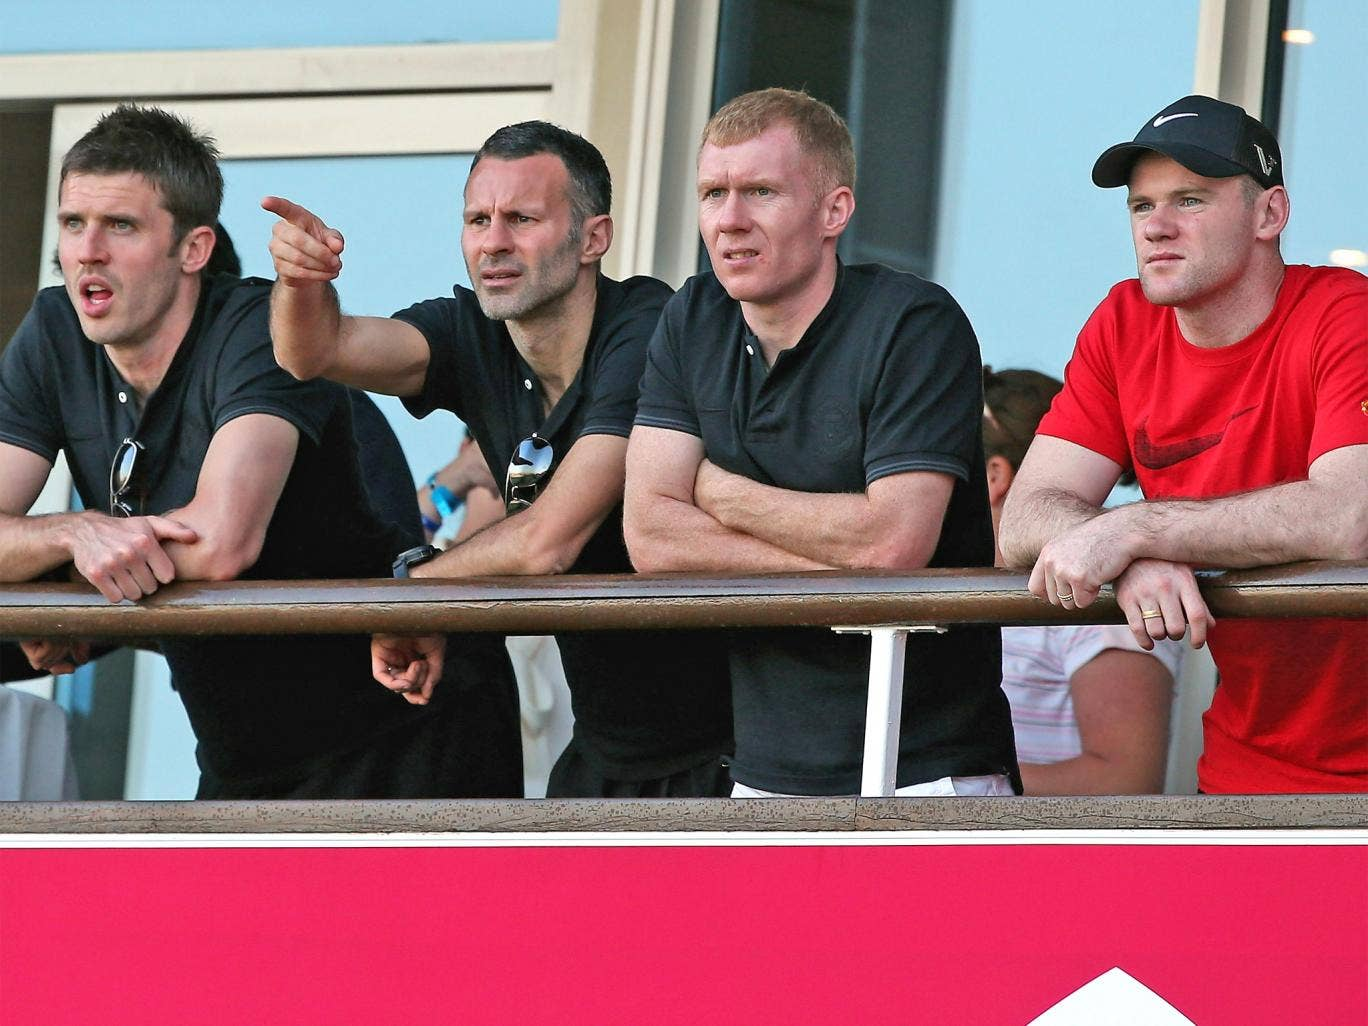 Manchester United's Wayne Rooney (right) watches the Qatar Masters golf in Doha with team-mates Michael Carrick, Ryan Giggs and Paul Scholes yesterday